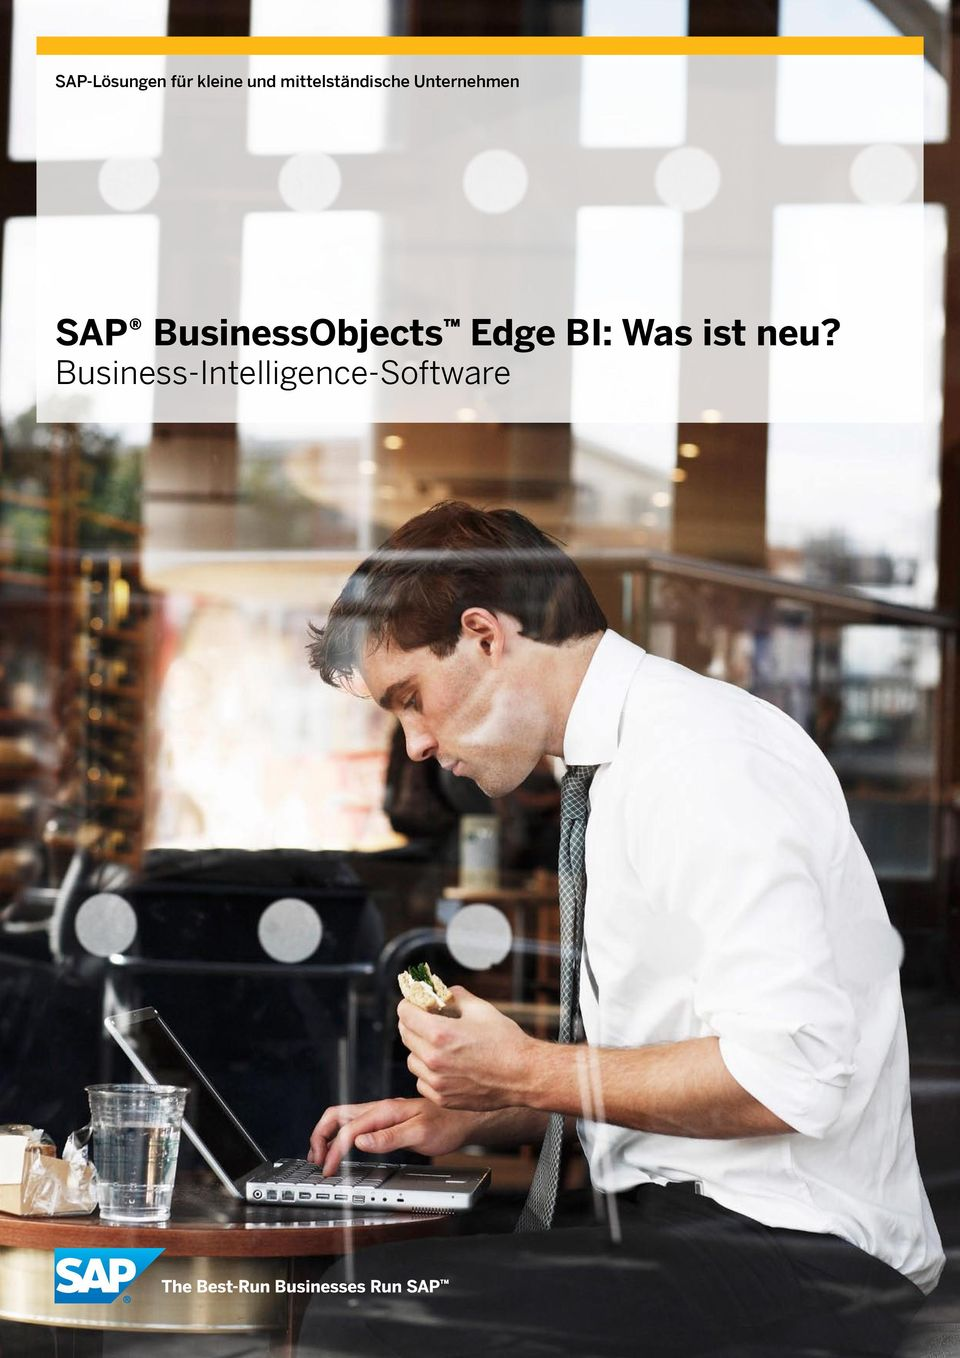 BusinessObjects Edge BI: Was ist